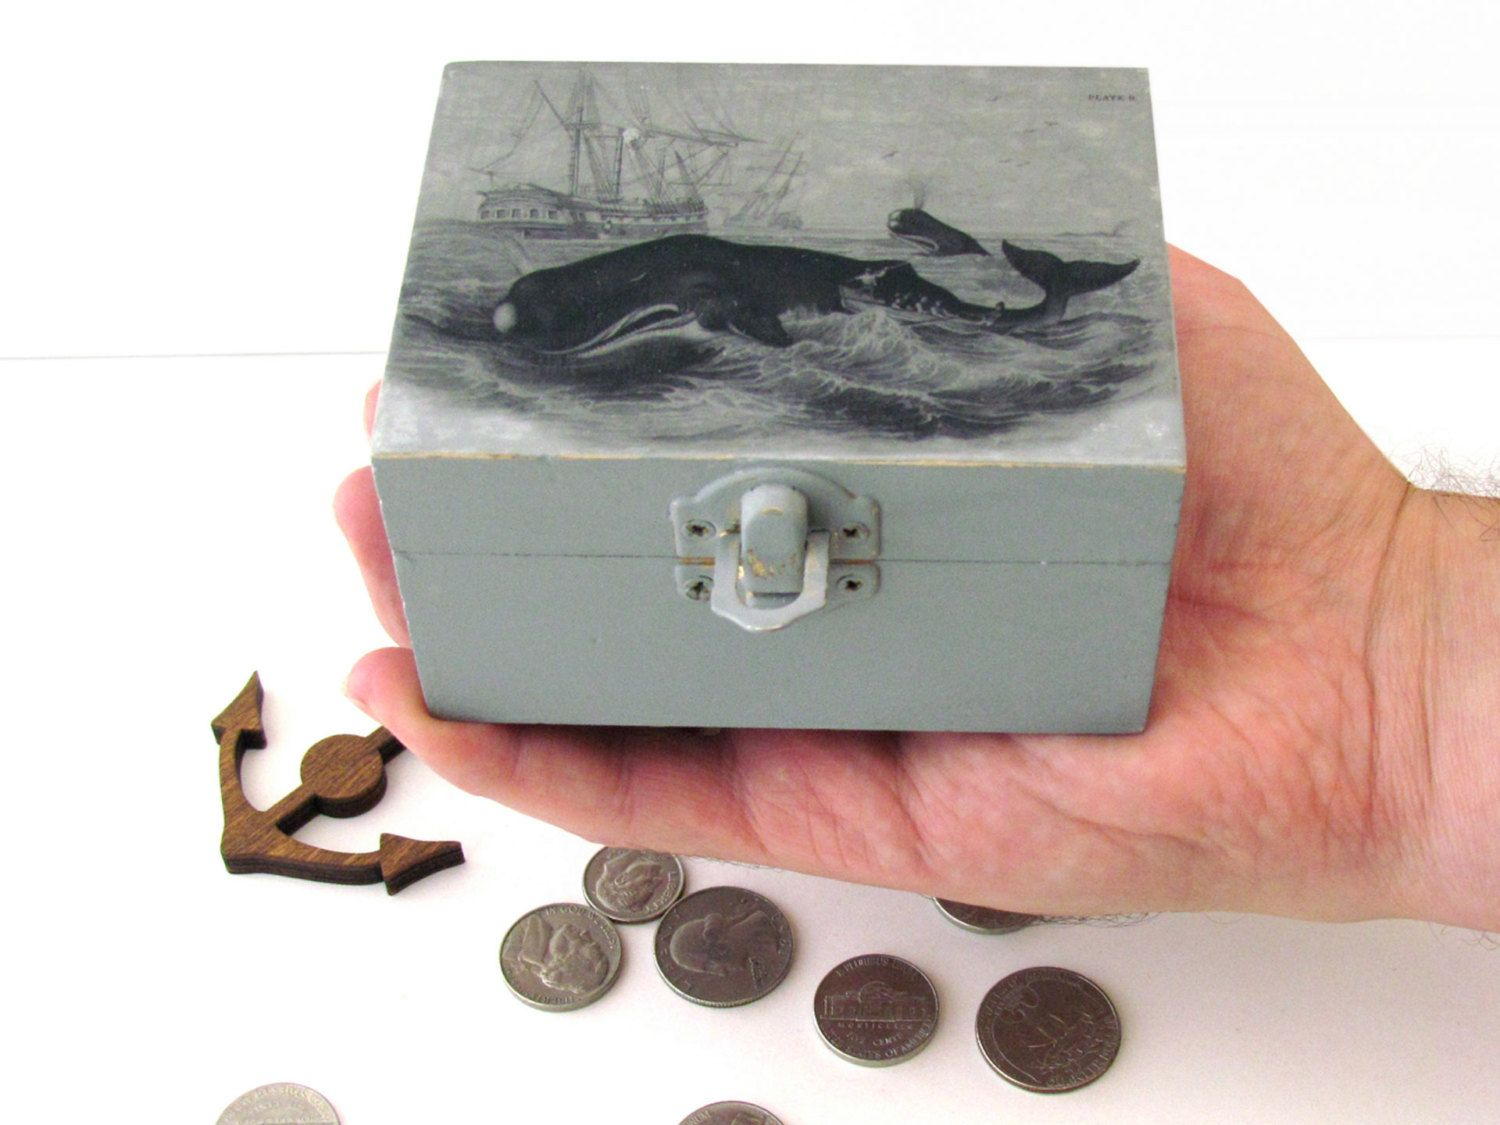 Decorative Keepsake Box Whale Hunt Rustic Small Wooden Box  Whale Theme Decorative